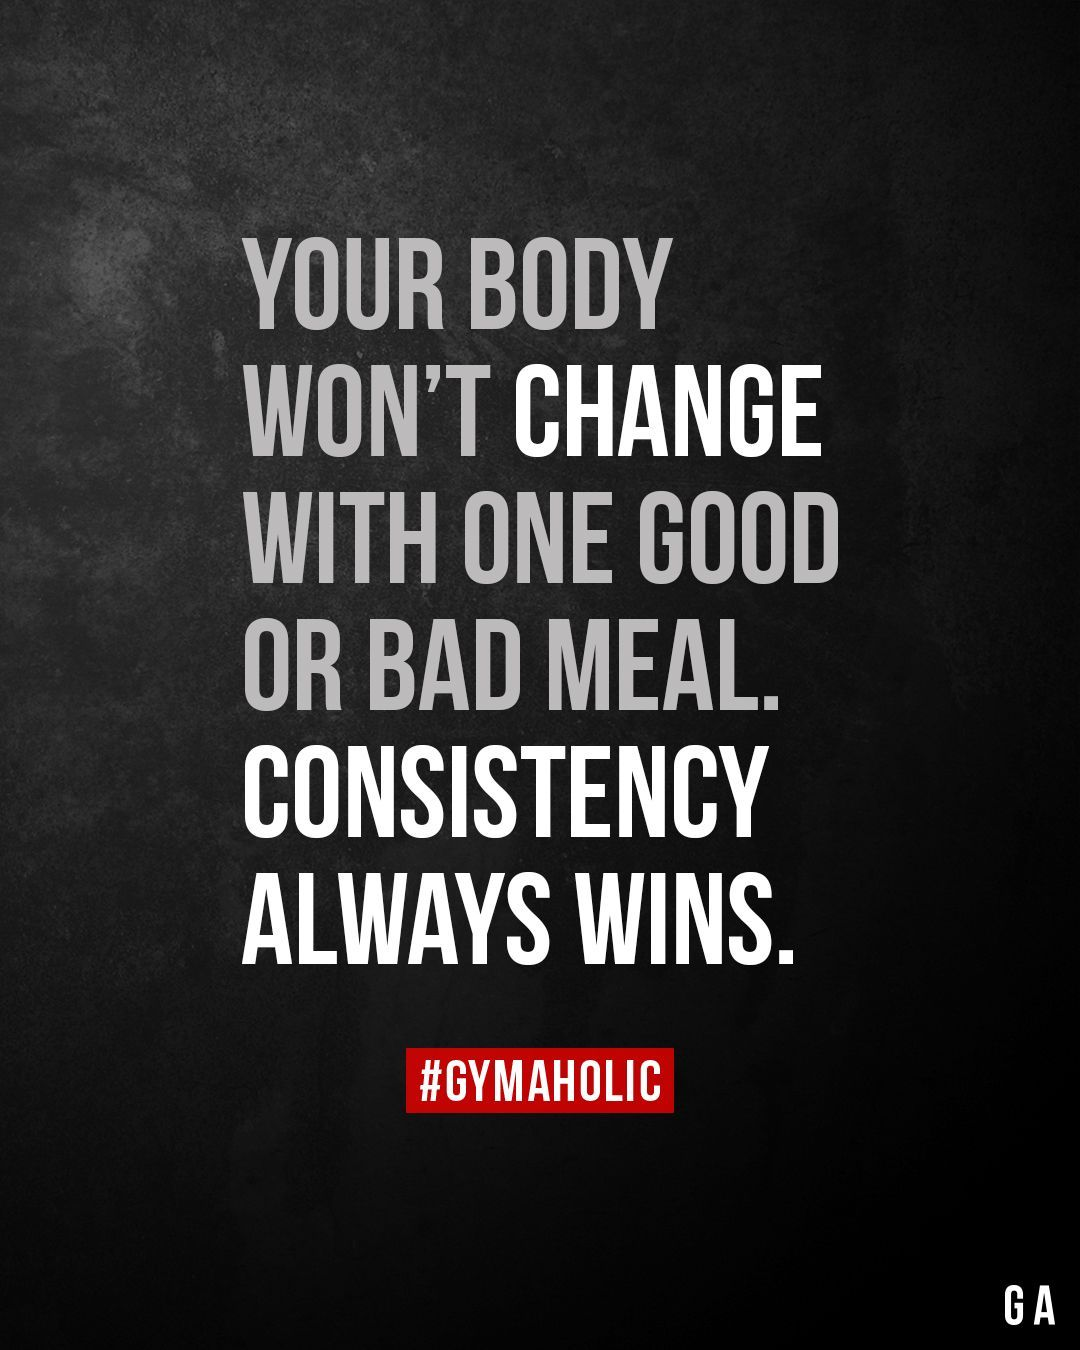 Your body won't change with one or bad meal. Consistency always wins. -  Your body won't change with...